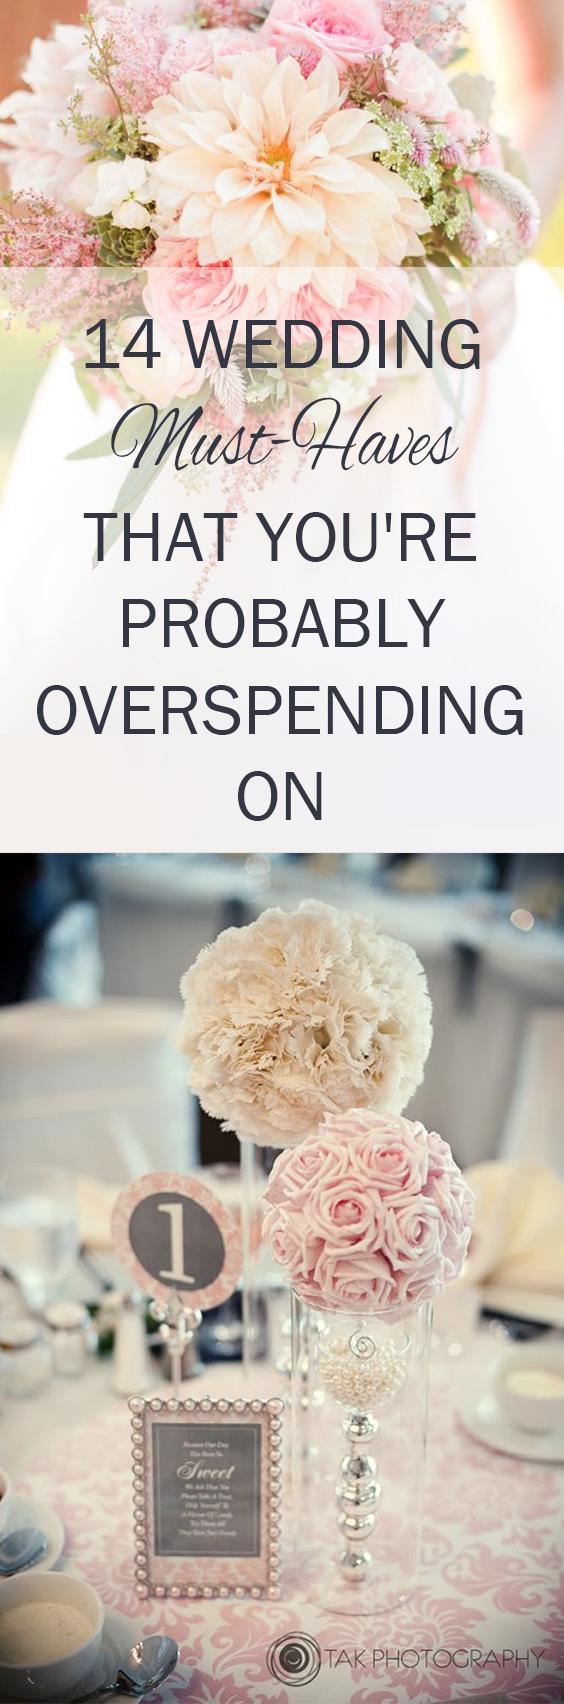 Weddings Save Money On How To